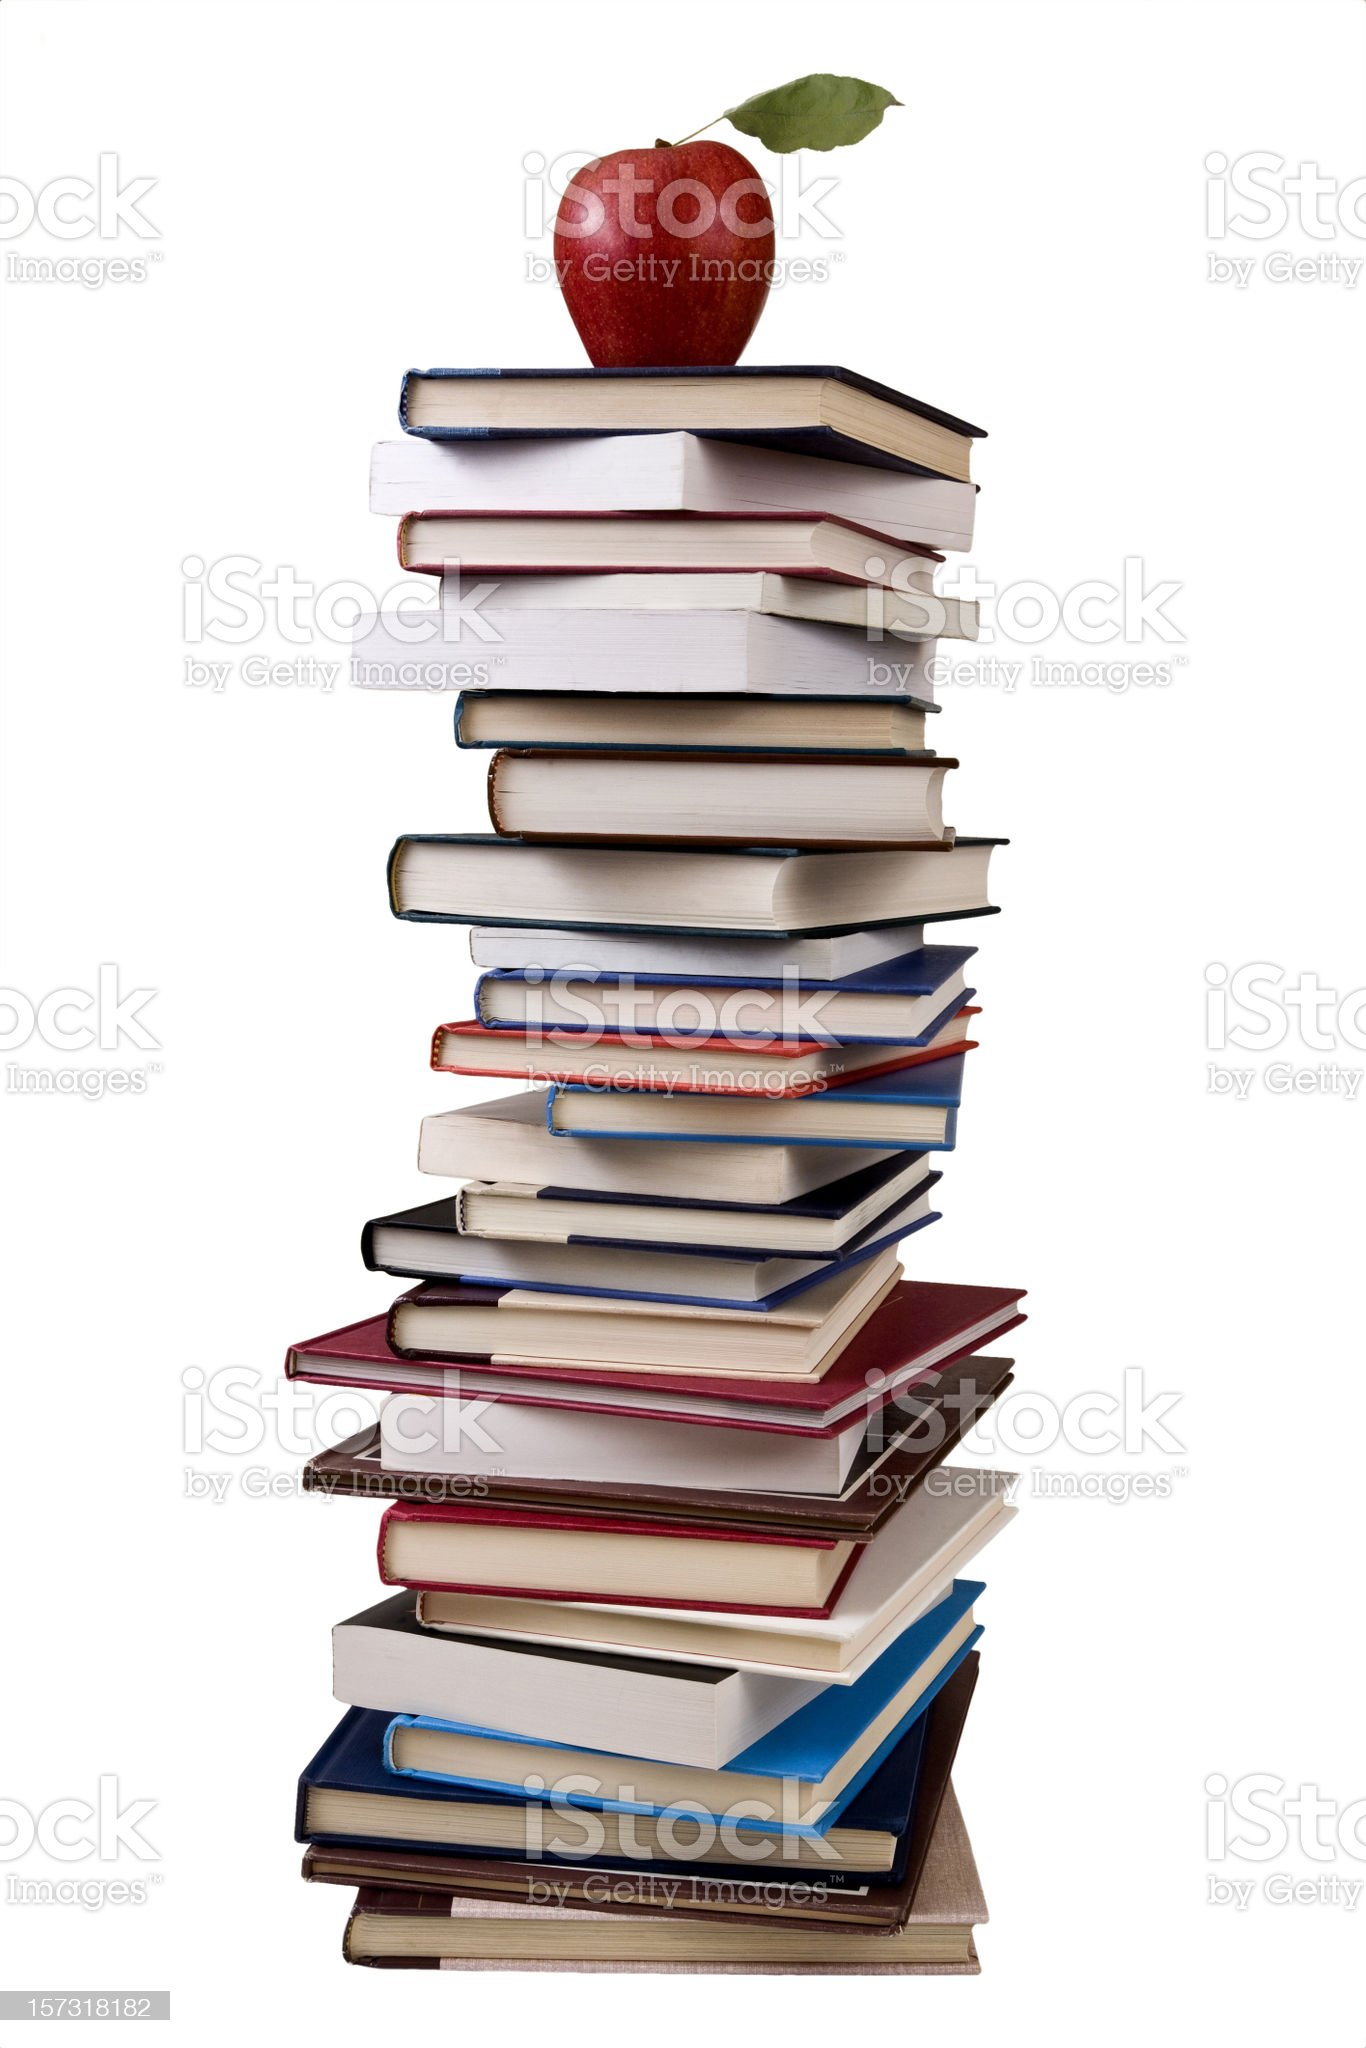 Knowledge is Power royalty-free stock photo